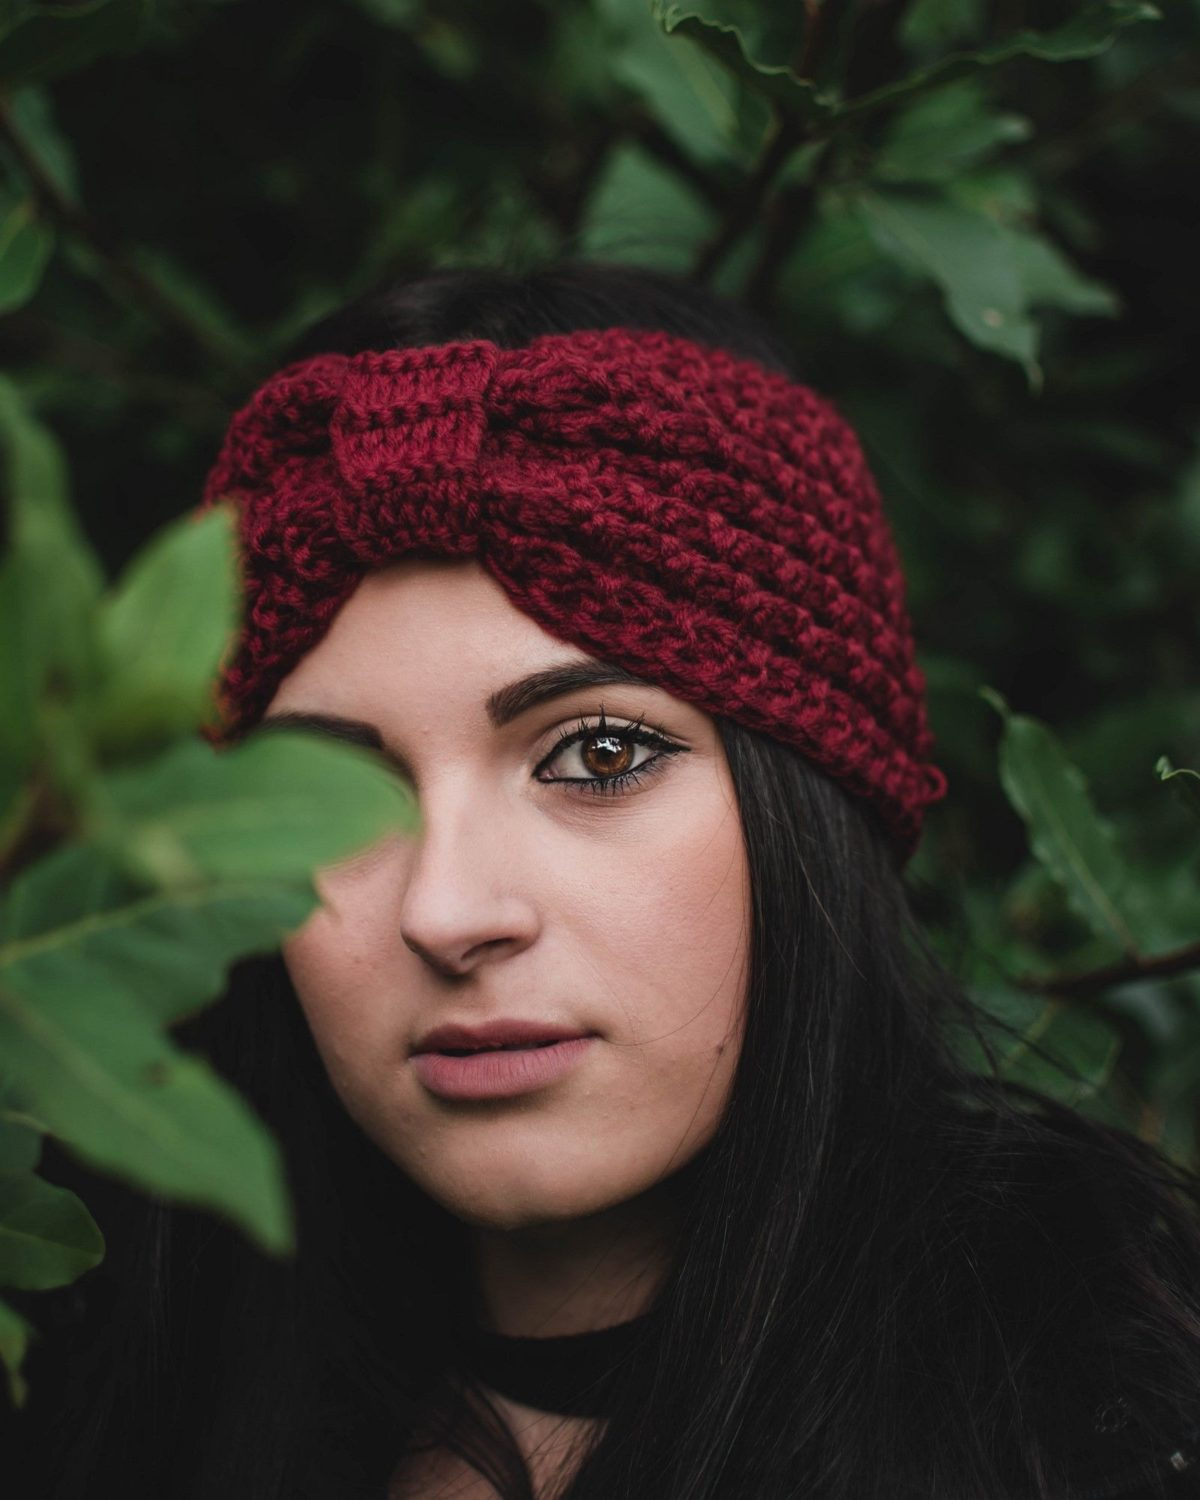 winter knit headband in dark red keeps warm and don't mess up hair